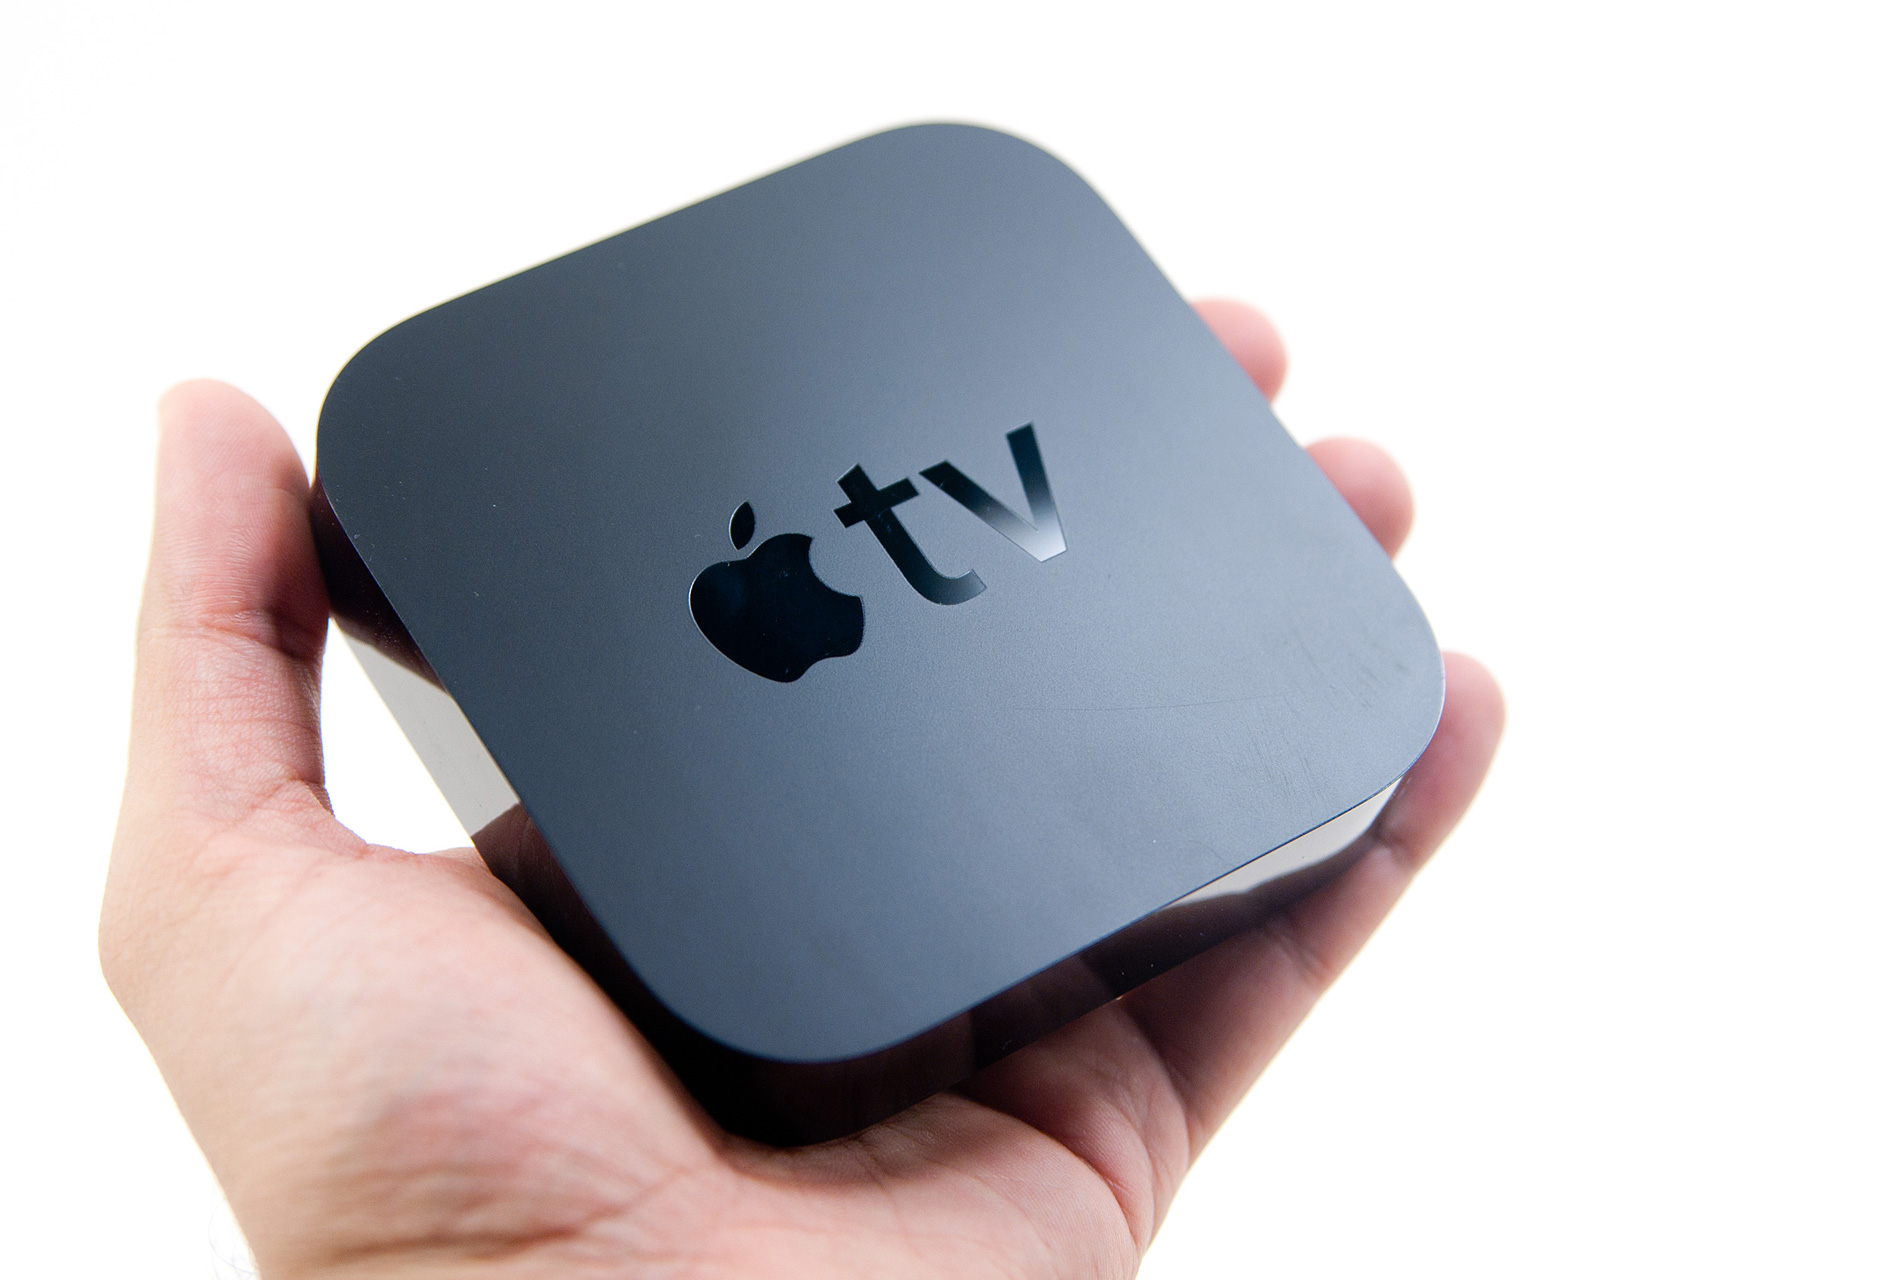 https://i2.wp.com/images.anandtech.com/reviews/gadgets/apple/AppleTV2/_DSC2624.jpg